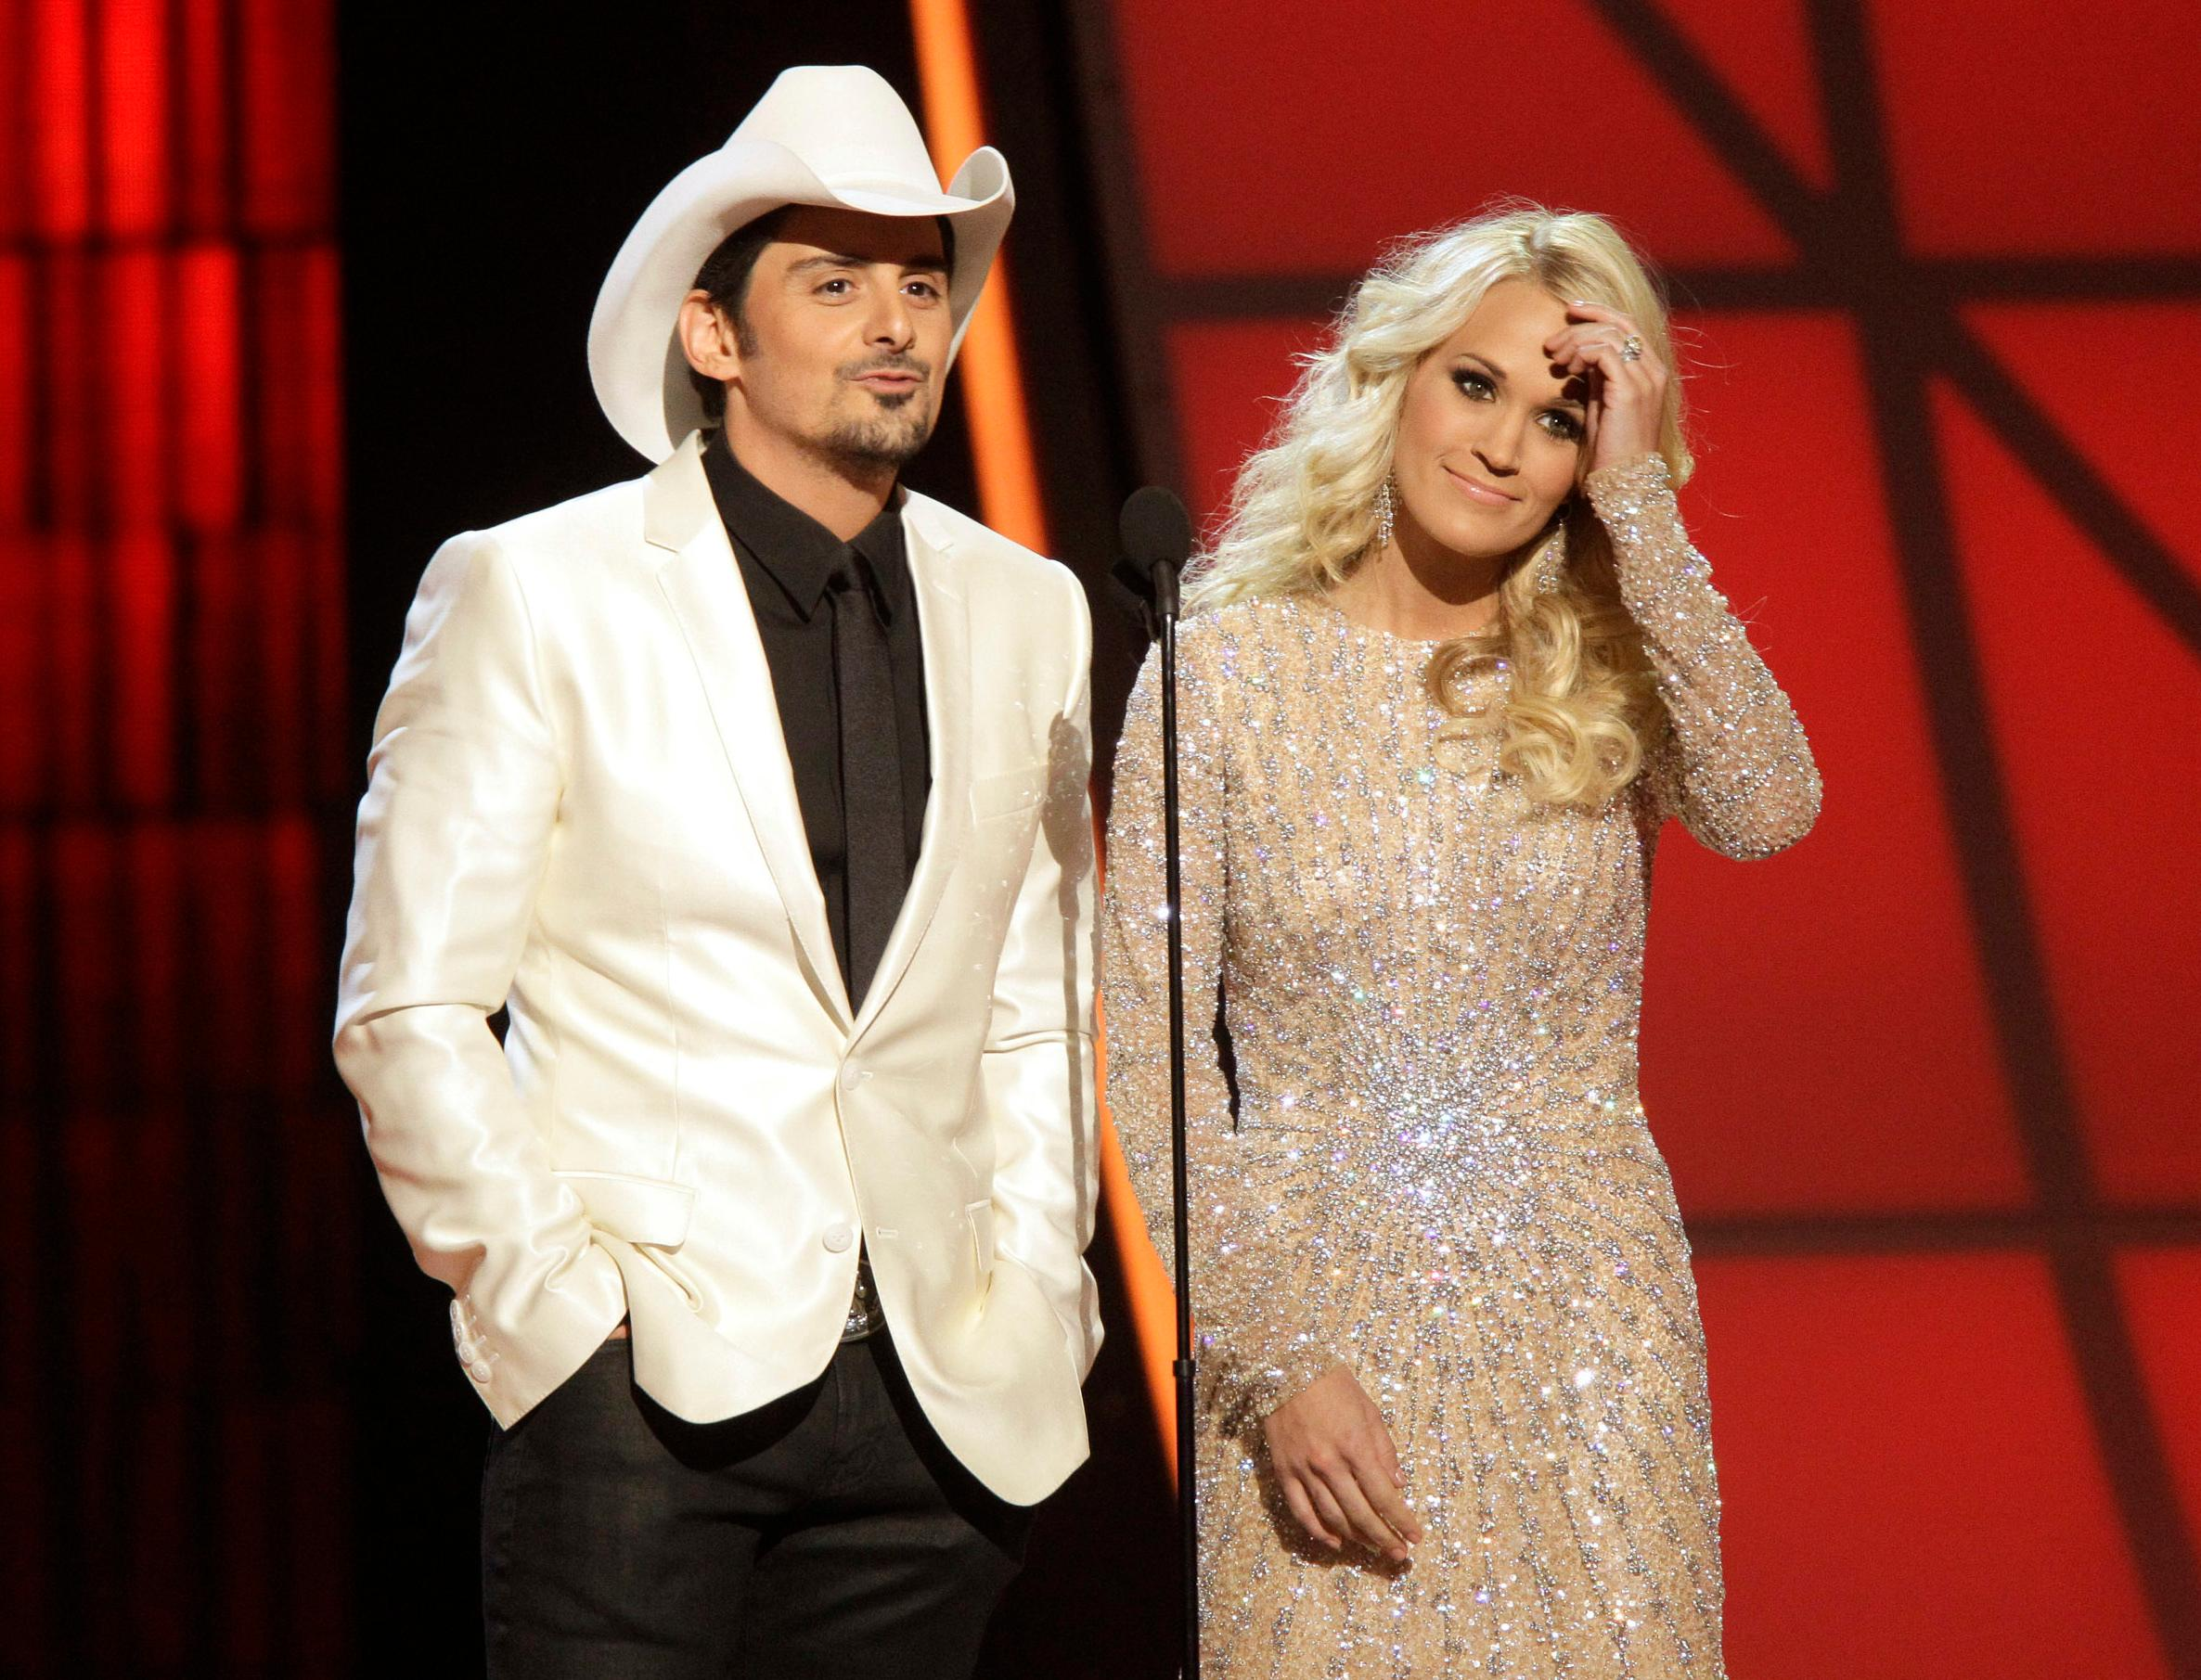 FILE - In this Nov. 1, 2012 file photo, hosts Brad Paisley, left, and Carrie Underwood appear at the 46th Annual Country Music Awards in Nashville, Tenn. (Photo by Wade Payne/Invision/AP, File)<p></p>